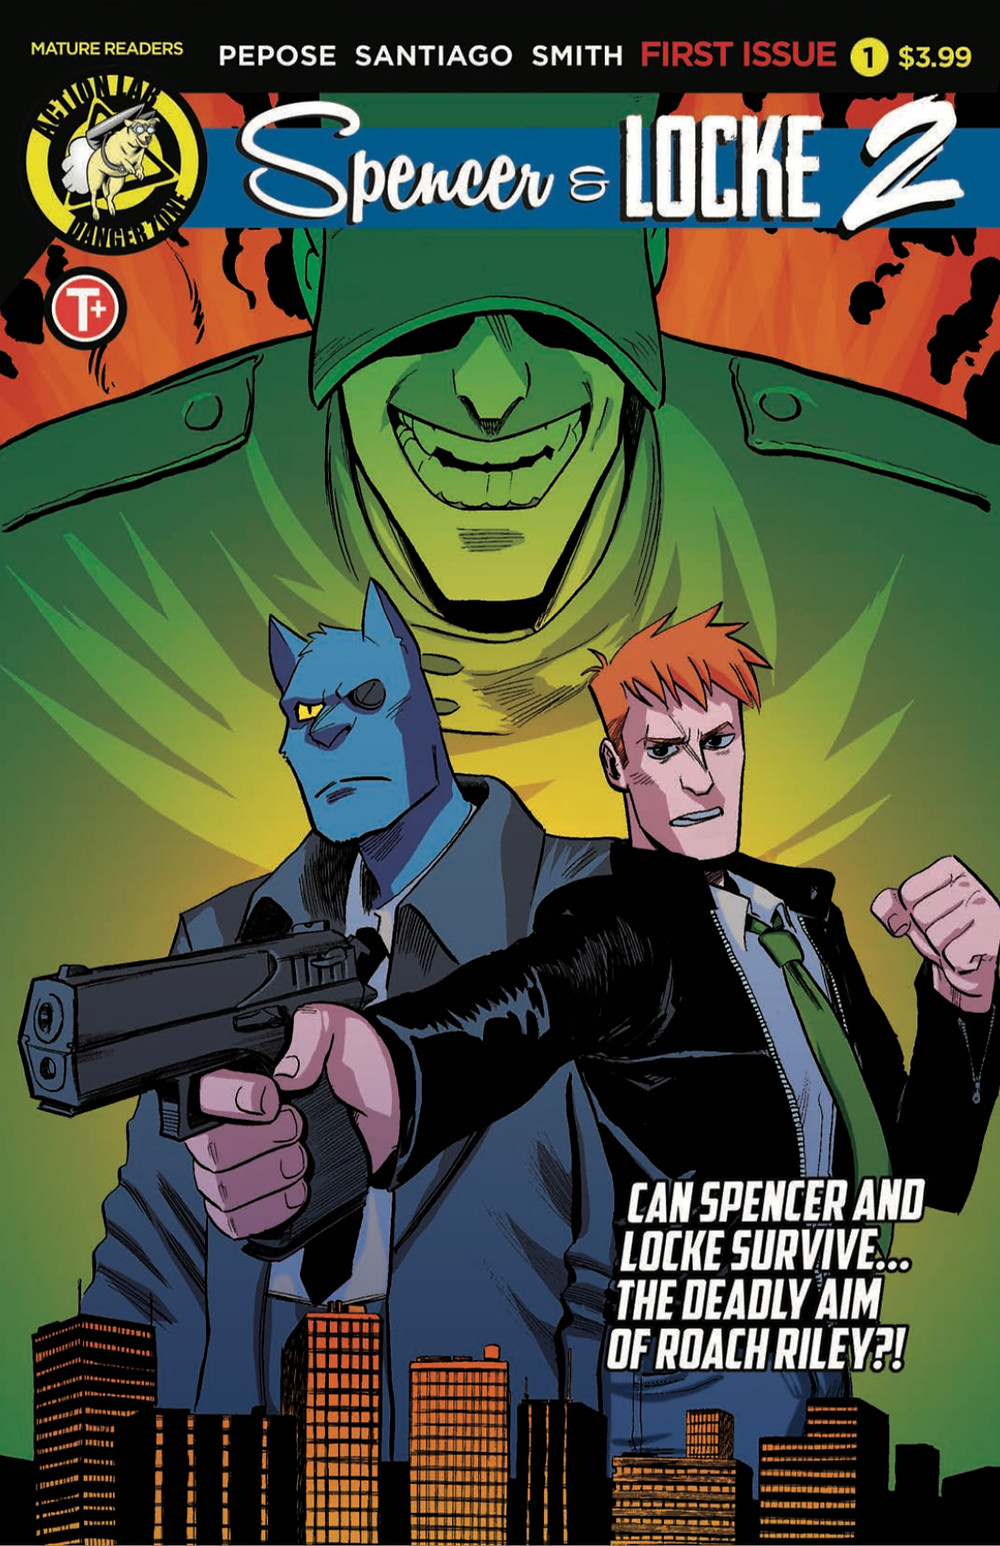 Spencer & Locke 2 #1, cover, Action Lab Entertainment, Pepose/Santiago, Jr.